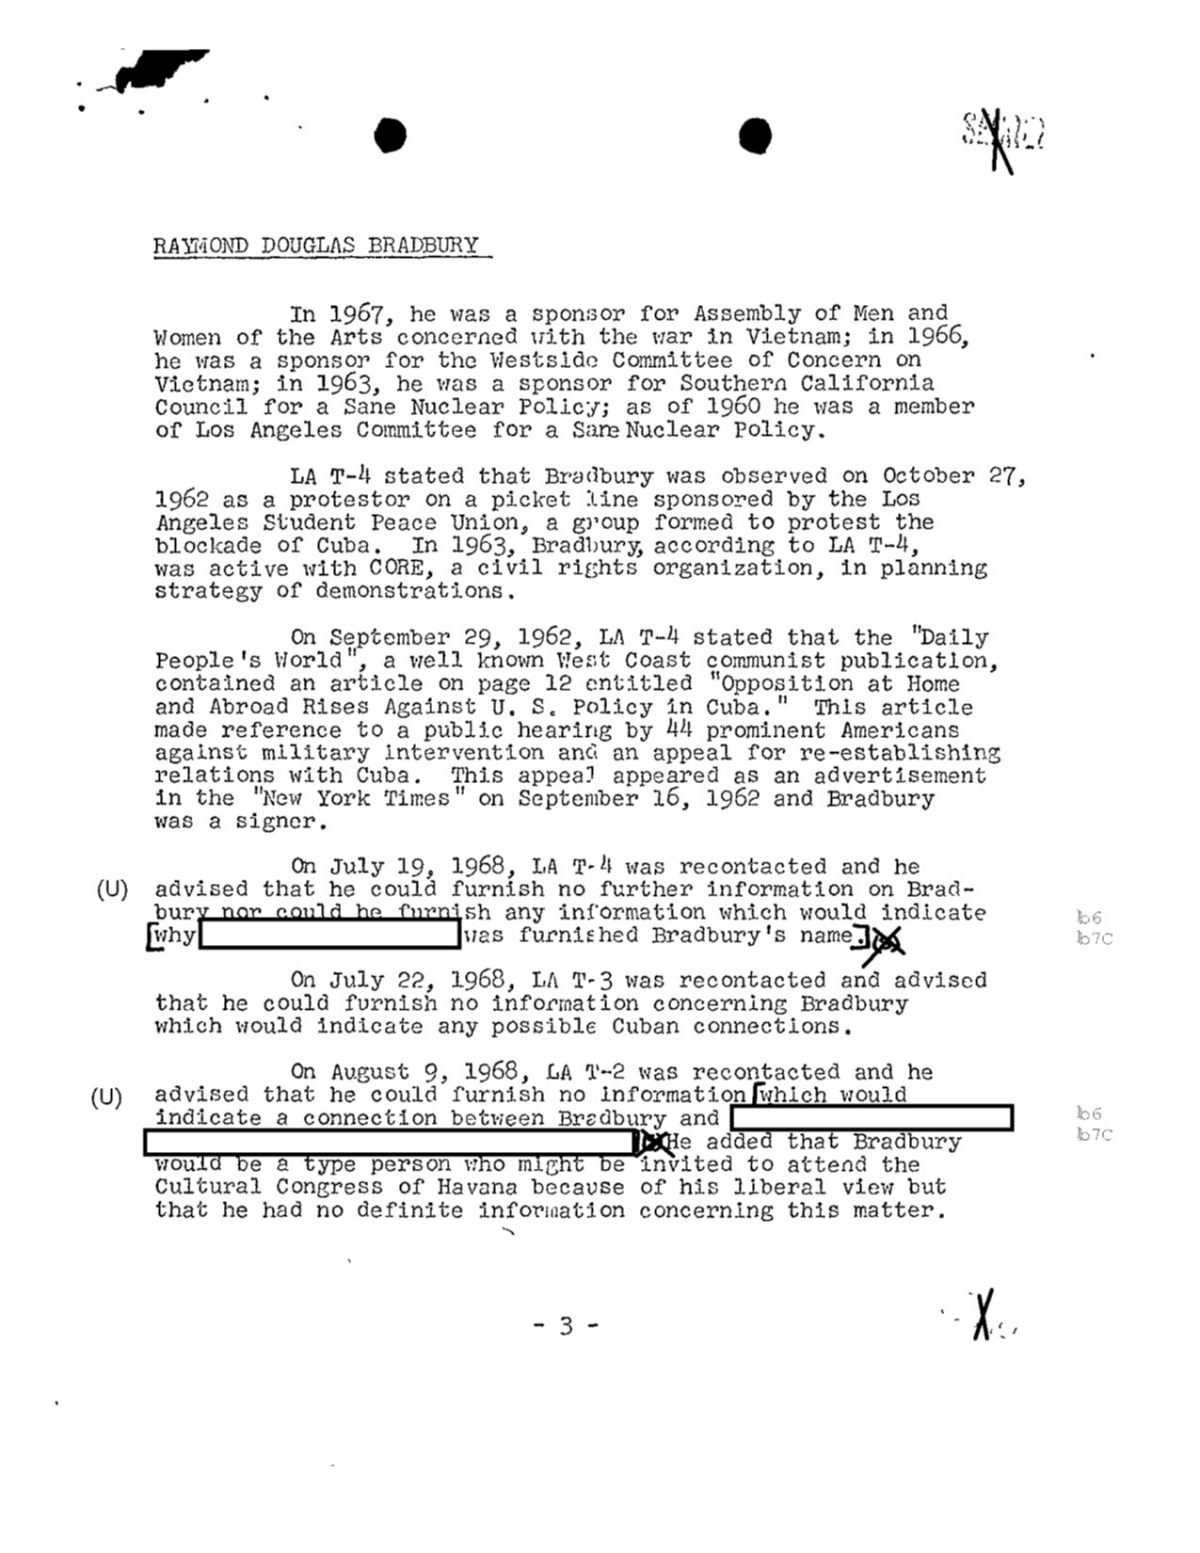 Ray Bradbury FBI files